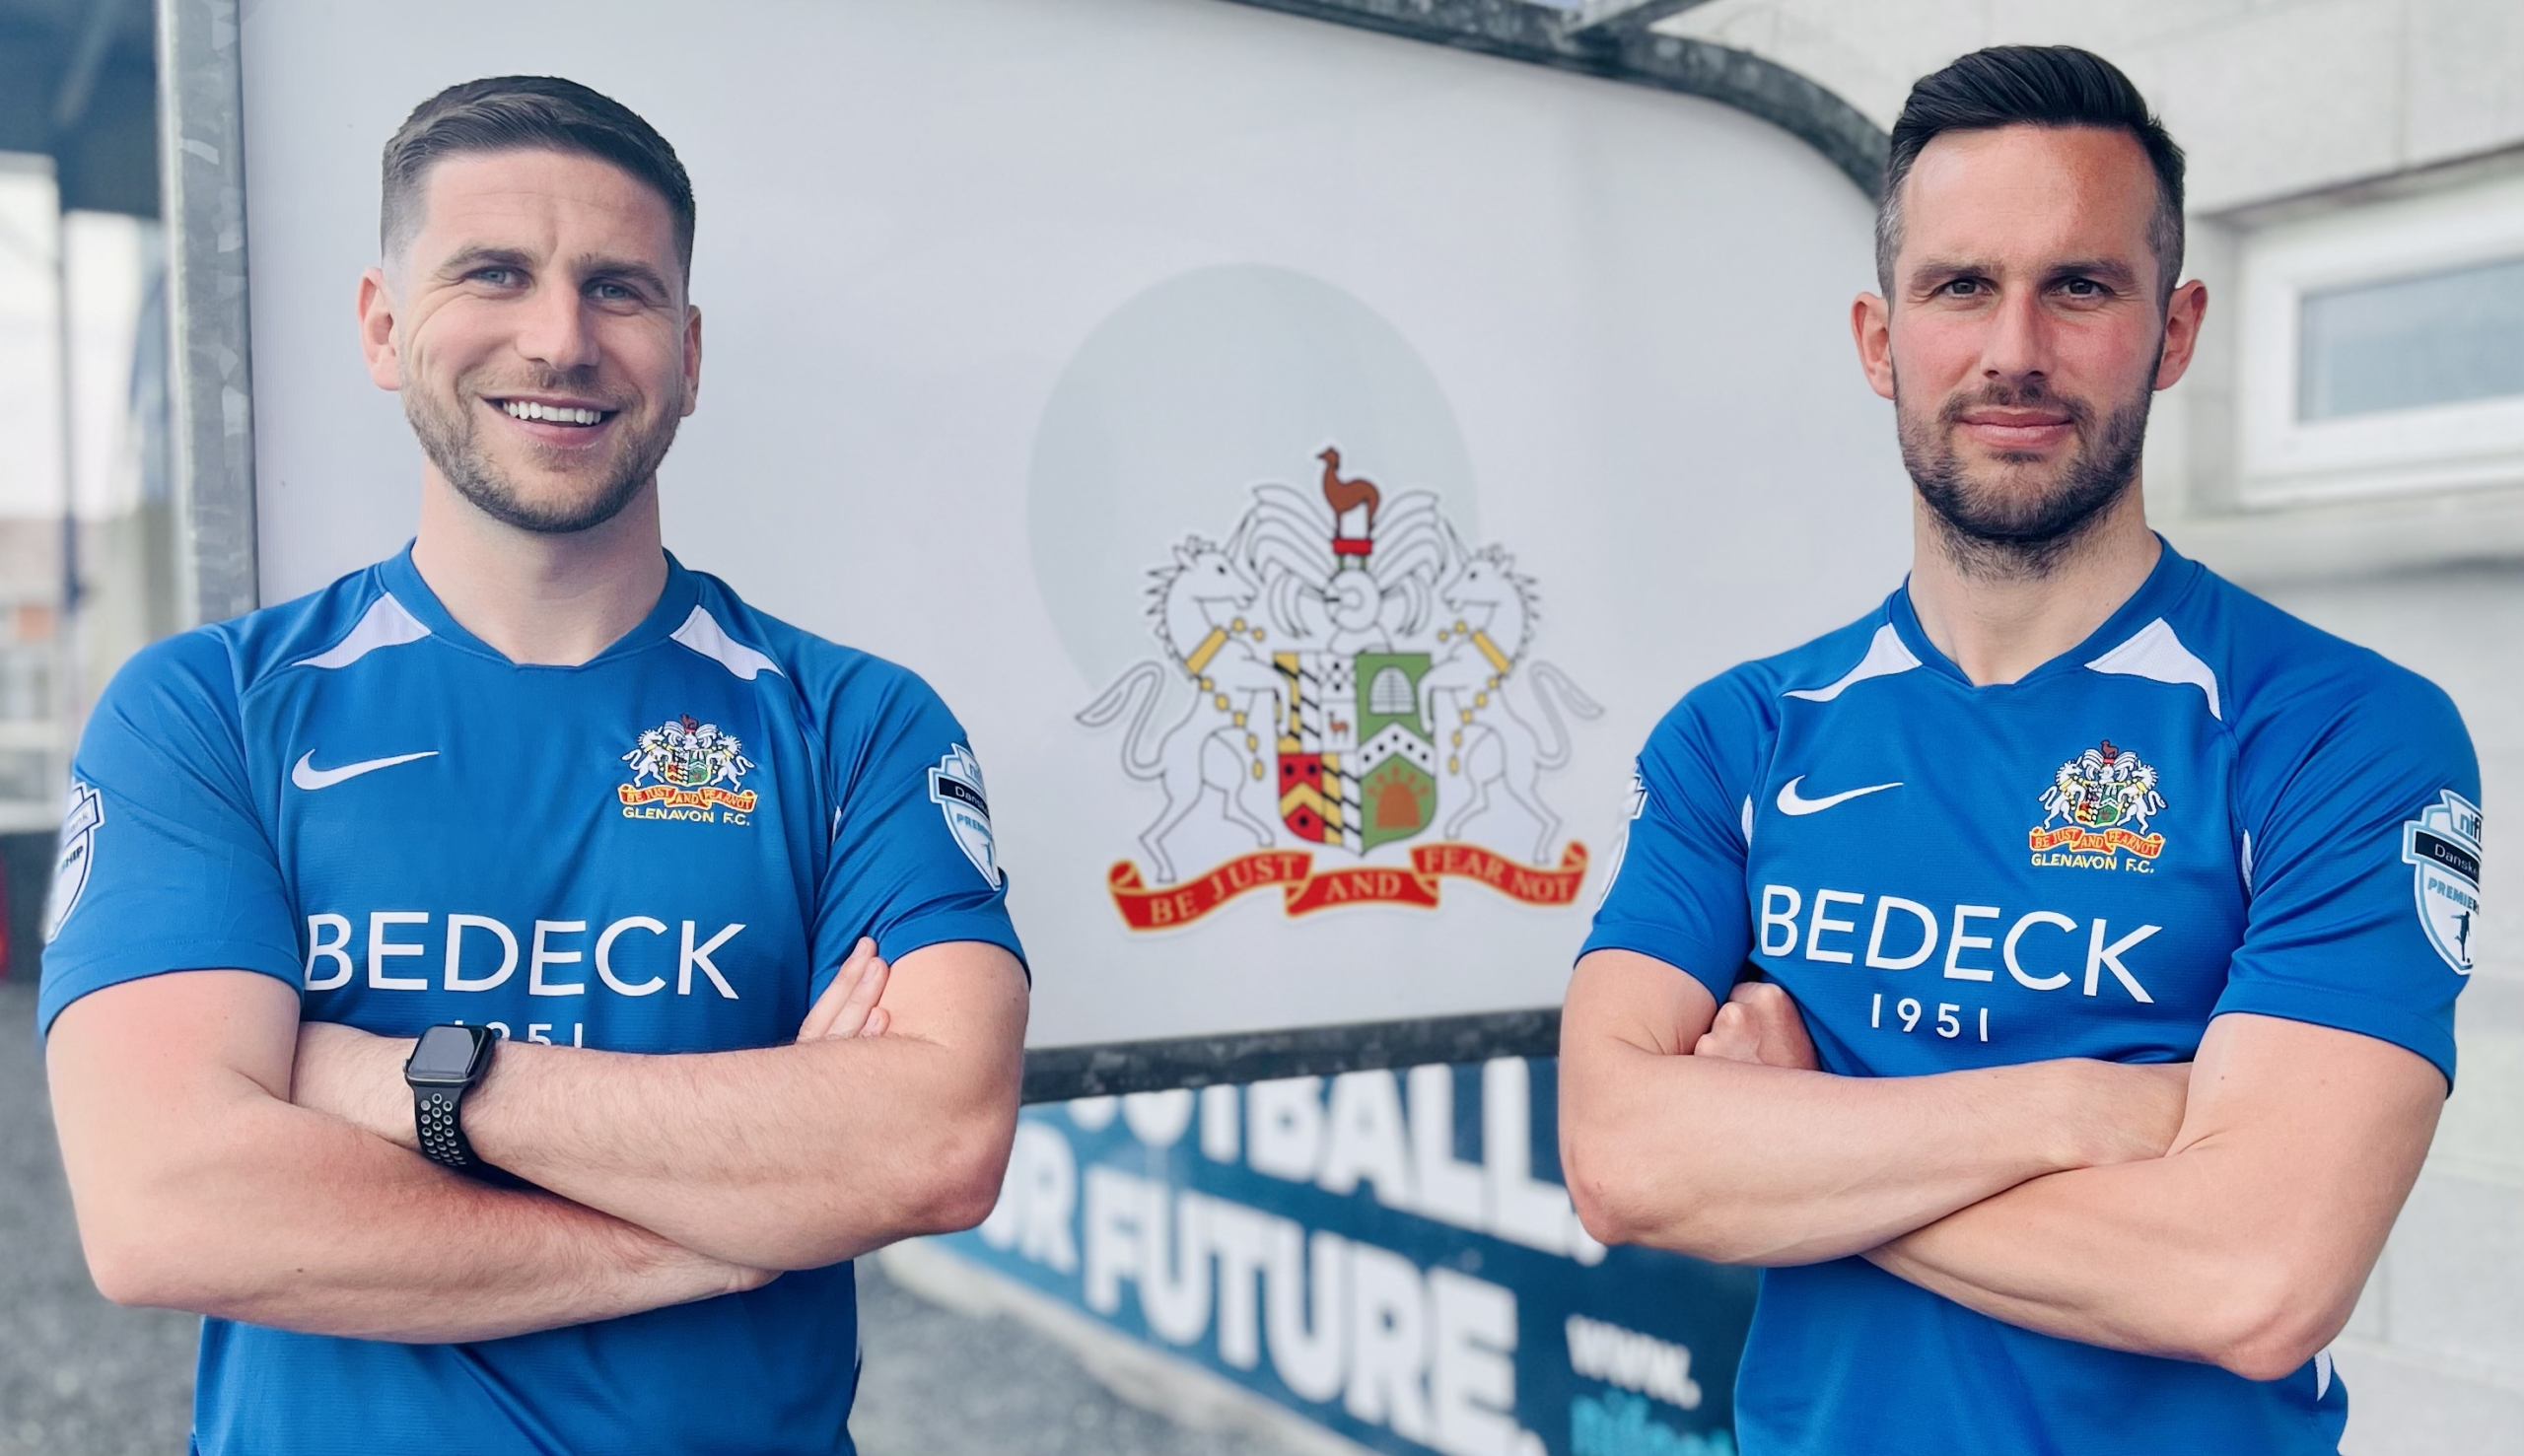 EXCLUSIVE: Haughey and Waterworth give first interviews to Glenavon Media